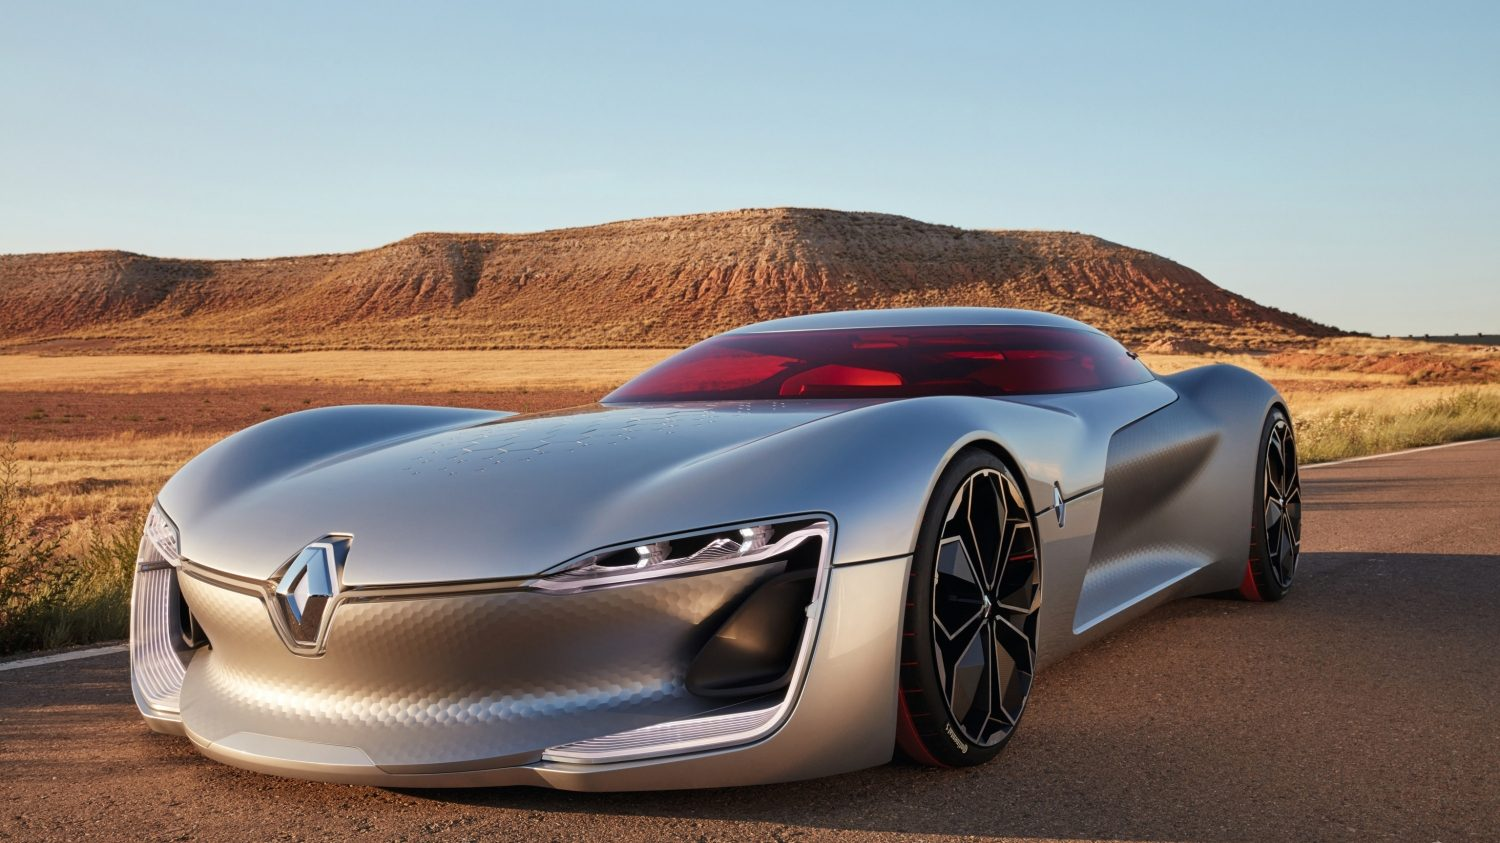 The hexagonal surface treatment gives this Renault a futurist feel.